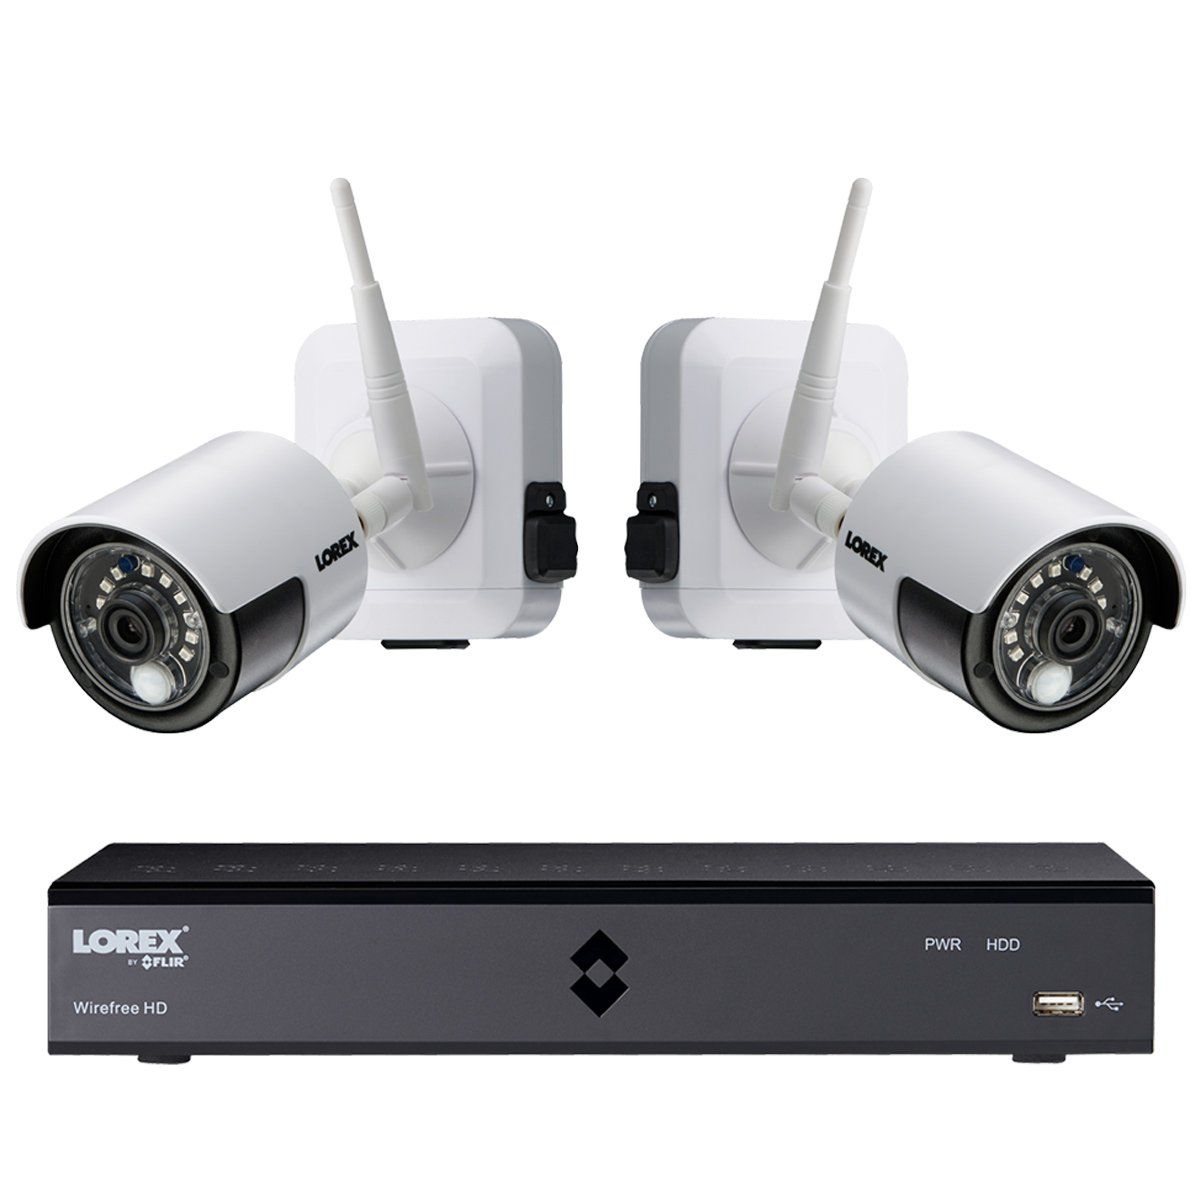 Buy And Install The Best Wi Fi Security Camera For Your Needs Diy Security Camera Security Cameras For Home Diy Security System